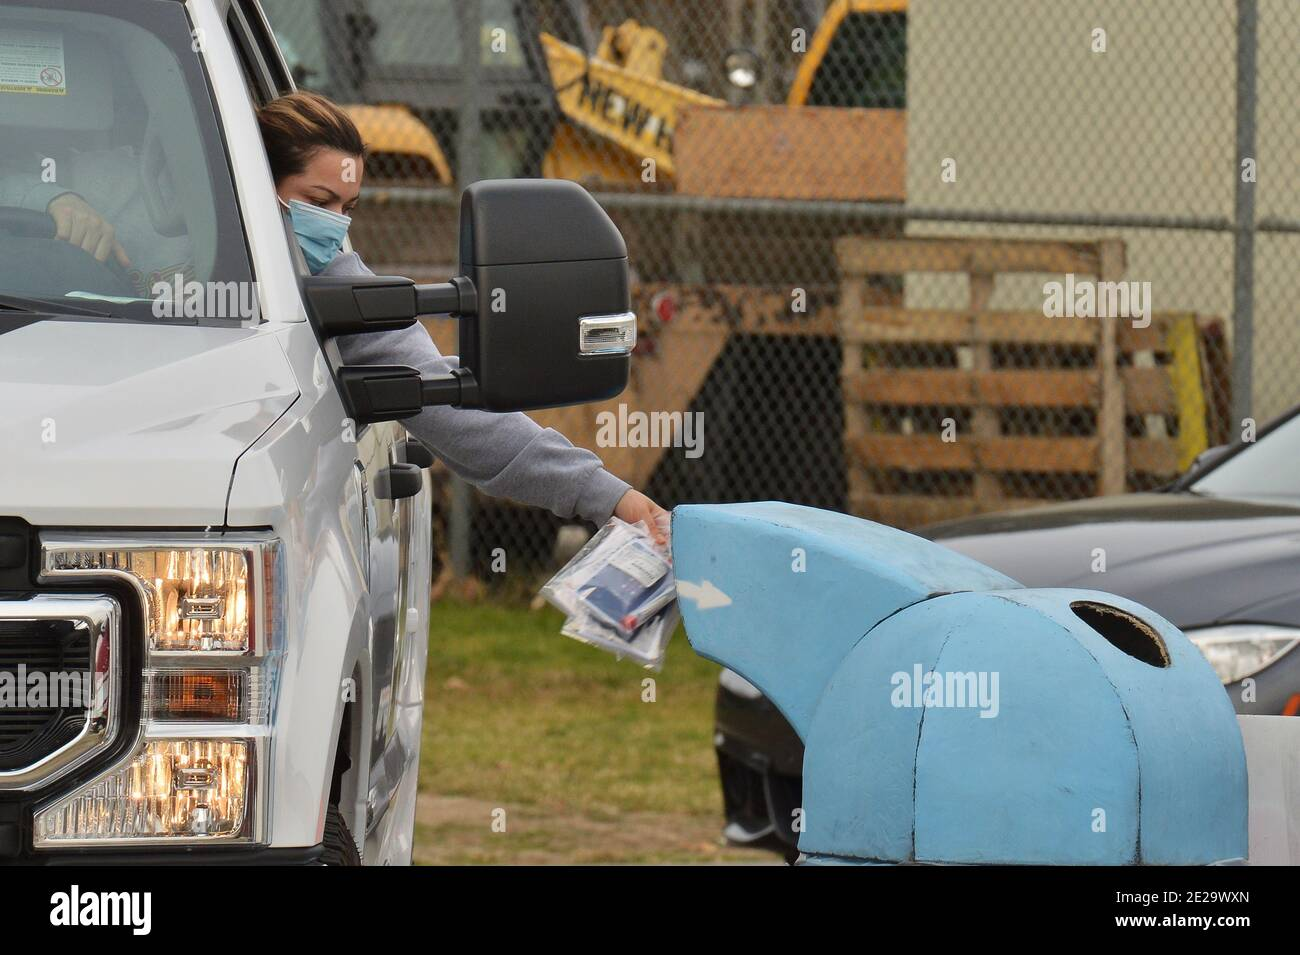 """Los Angeles, California, USA. 13th Jan, 2021. Los Angeles, United States. 13th Jan, 2021. Residents deposit their Curative coronavirus test in a receptacle at the Hansen Dam testing site in Los Angeles on Tuesday, January 12, 2021. Los Angeles County health officials said Sunday they will stop providing the commonly used coronavirus test after federal regulators raised questions about its accuracy, saying the test made by Curative carries a """"risk of false results, particularly false negative results."""" Photo by Jim Ruymen/UPI Credit: UPI/Alamy Live News Credit: UPI/Alamy Live News Stock Photo"""